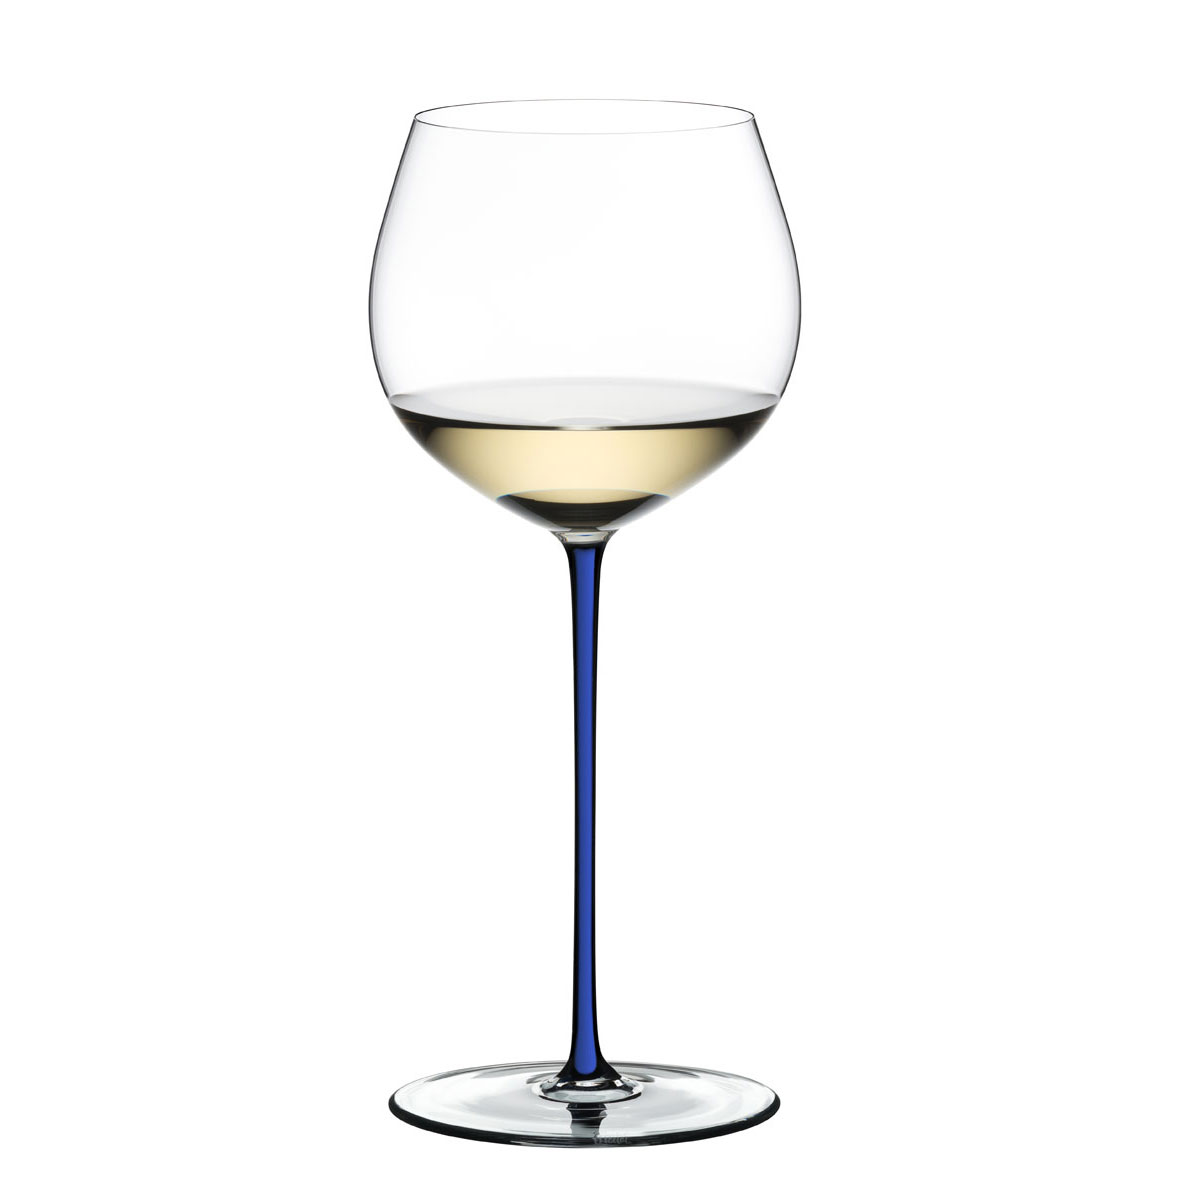 Riedel Fatto A Mano, Oaked Chardonnay Crystal Wine Glass, Blue